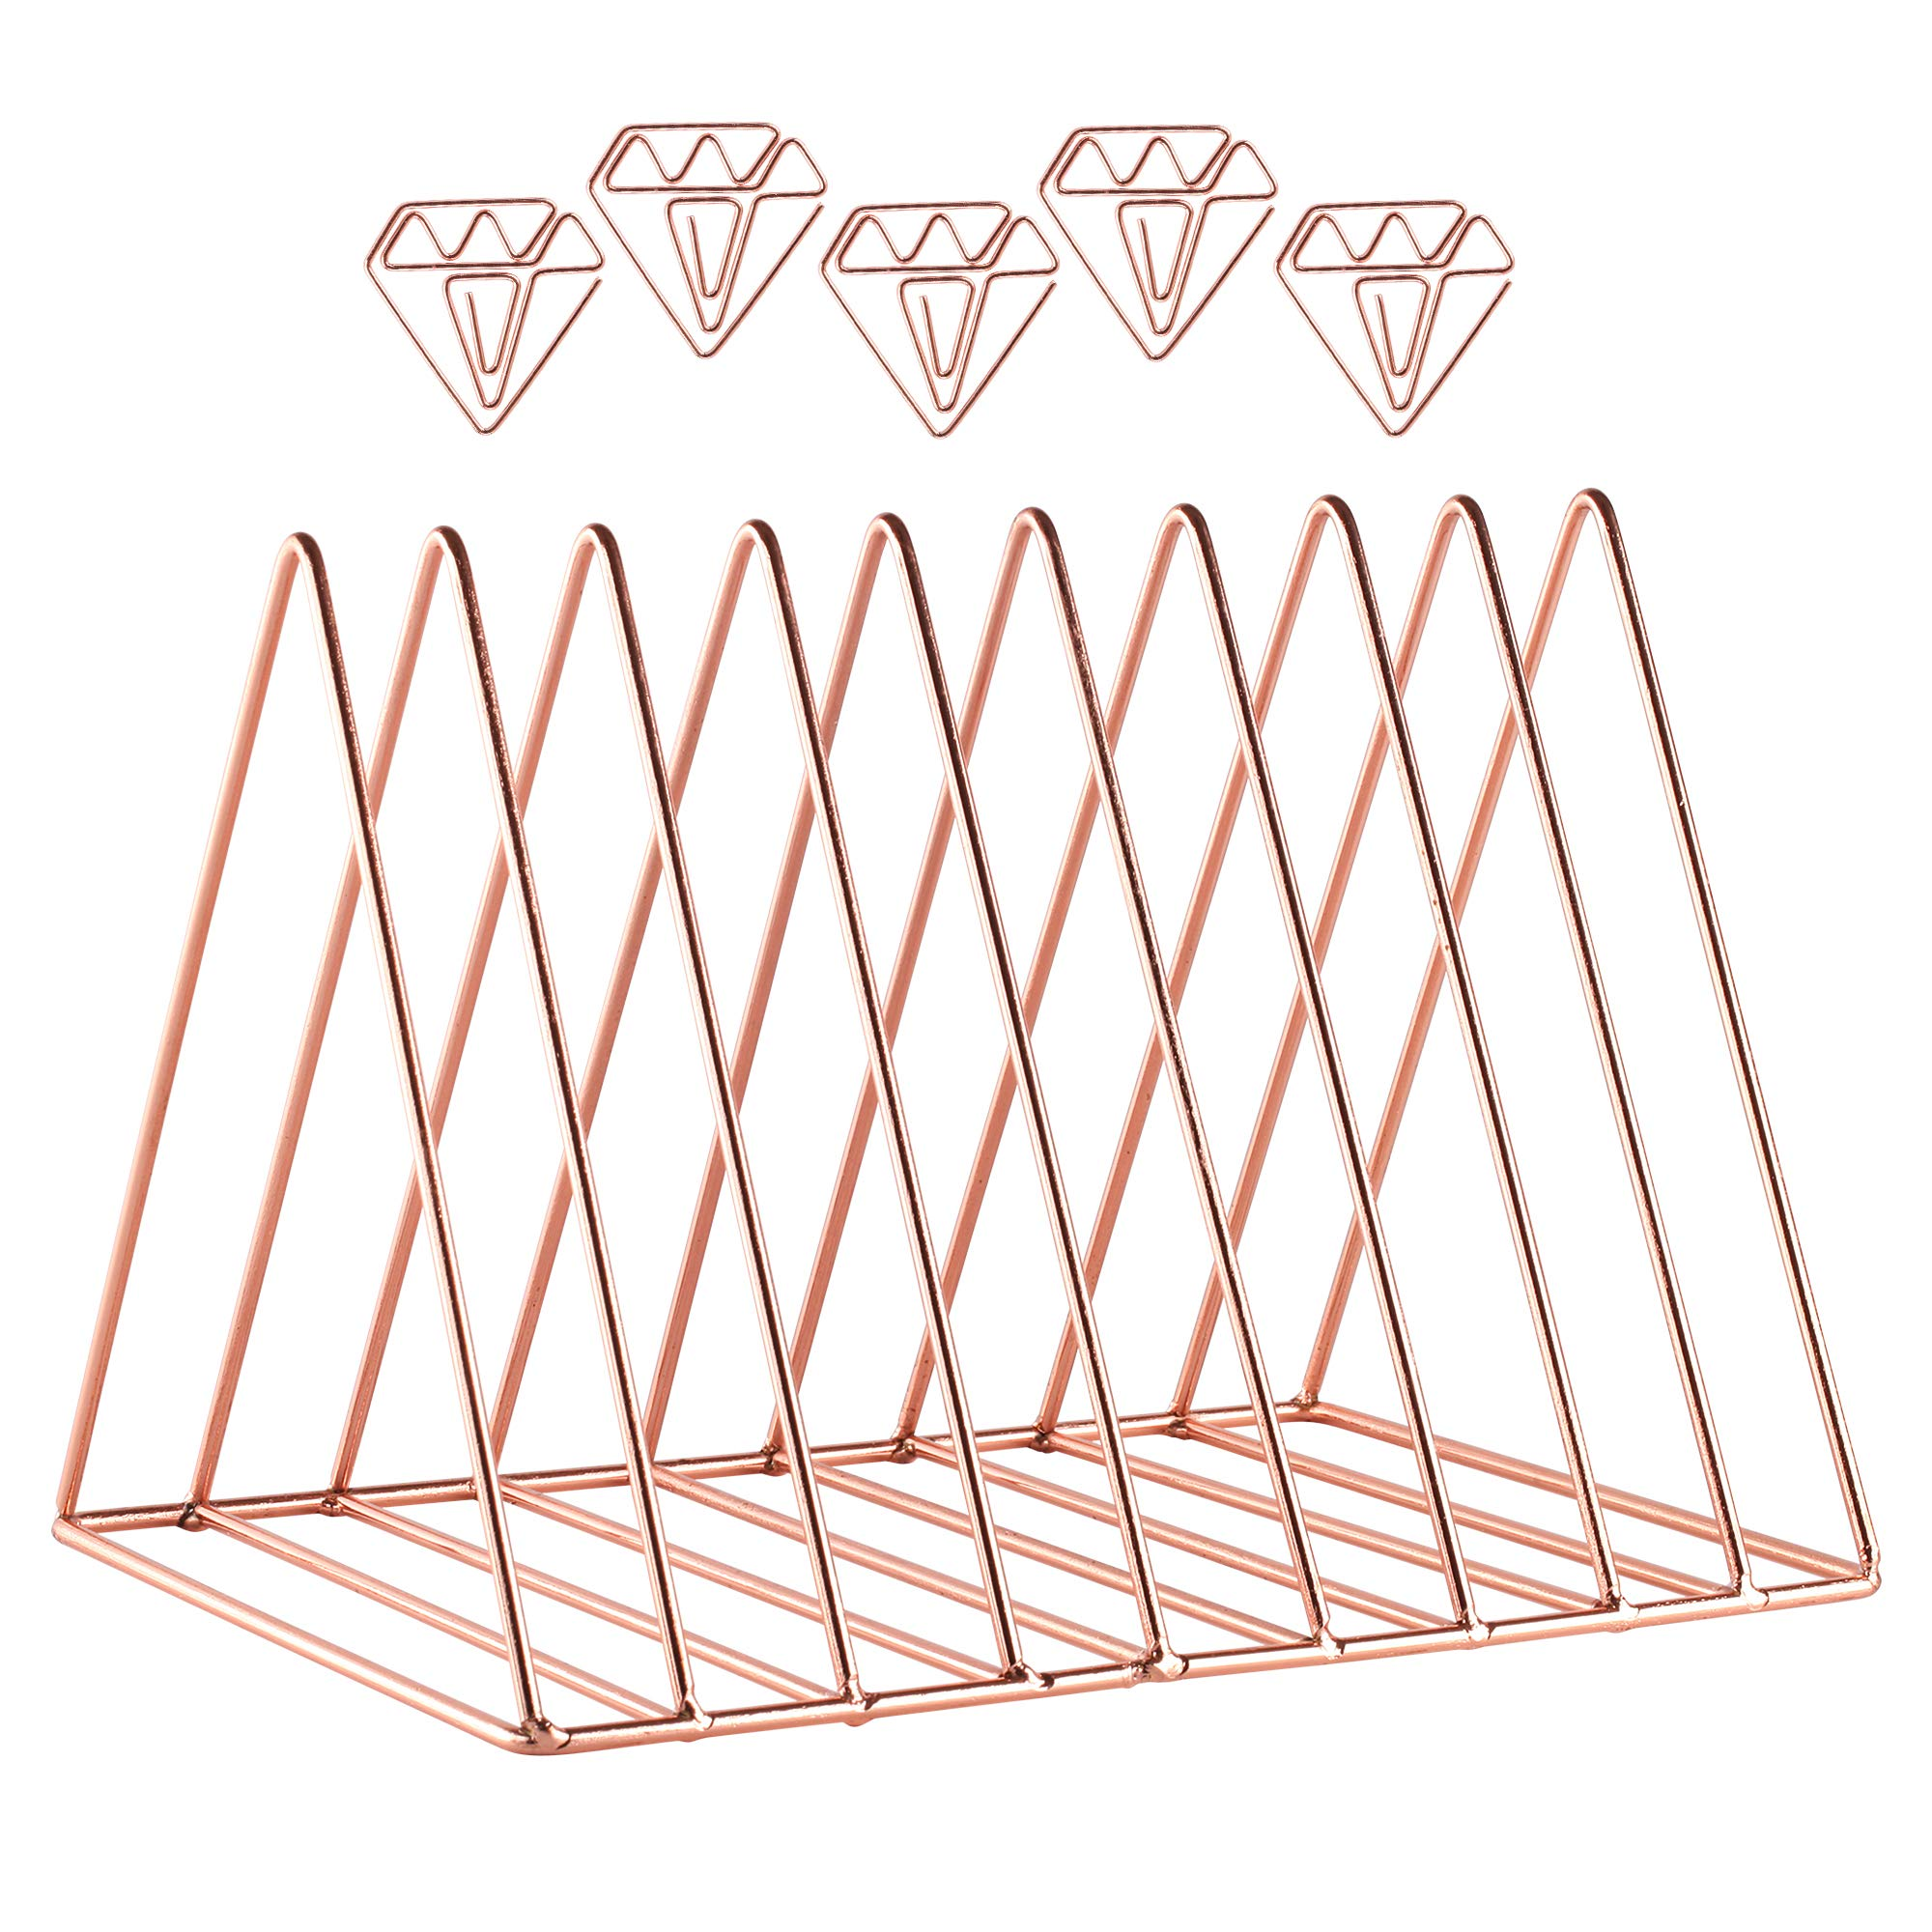 Rose Gold Office Supplies Magazine Rack and Diamond Paper Clips